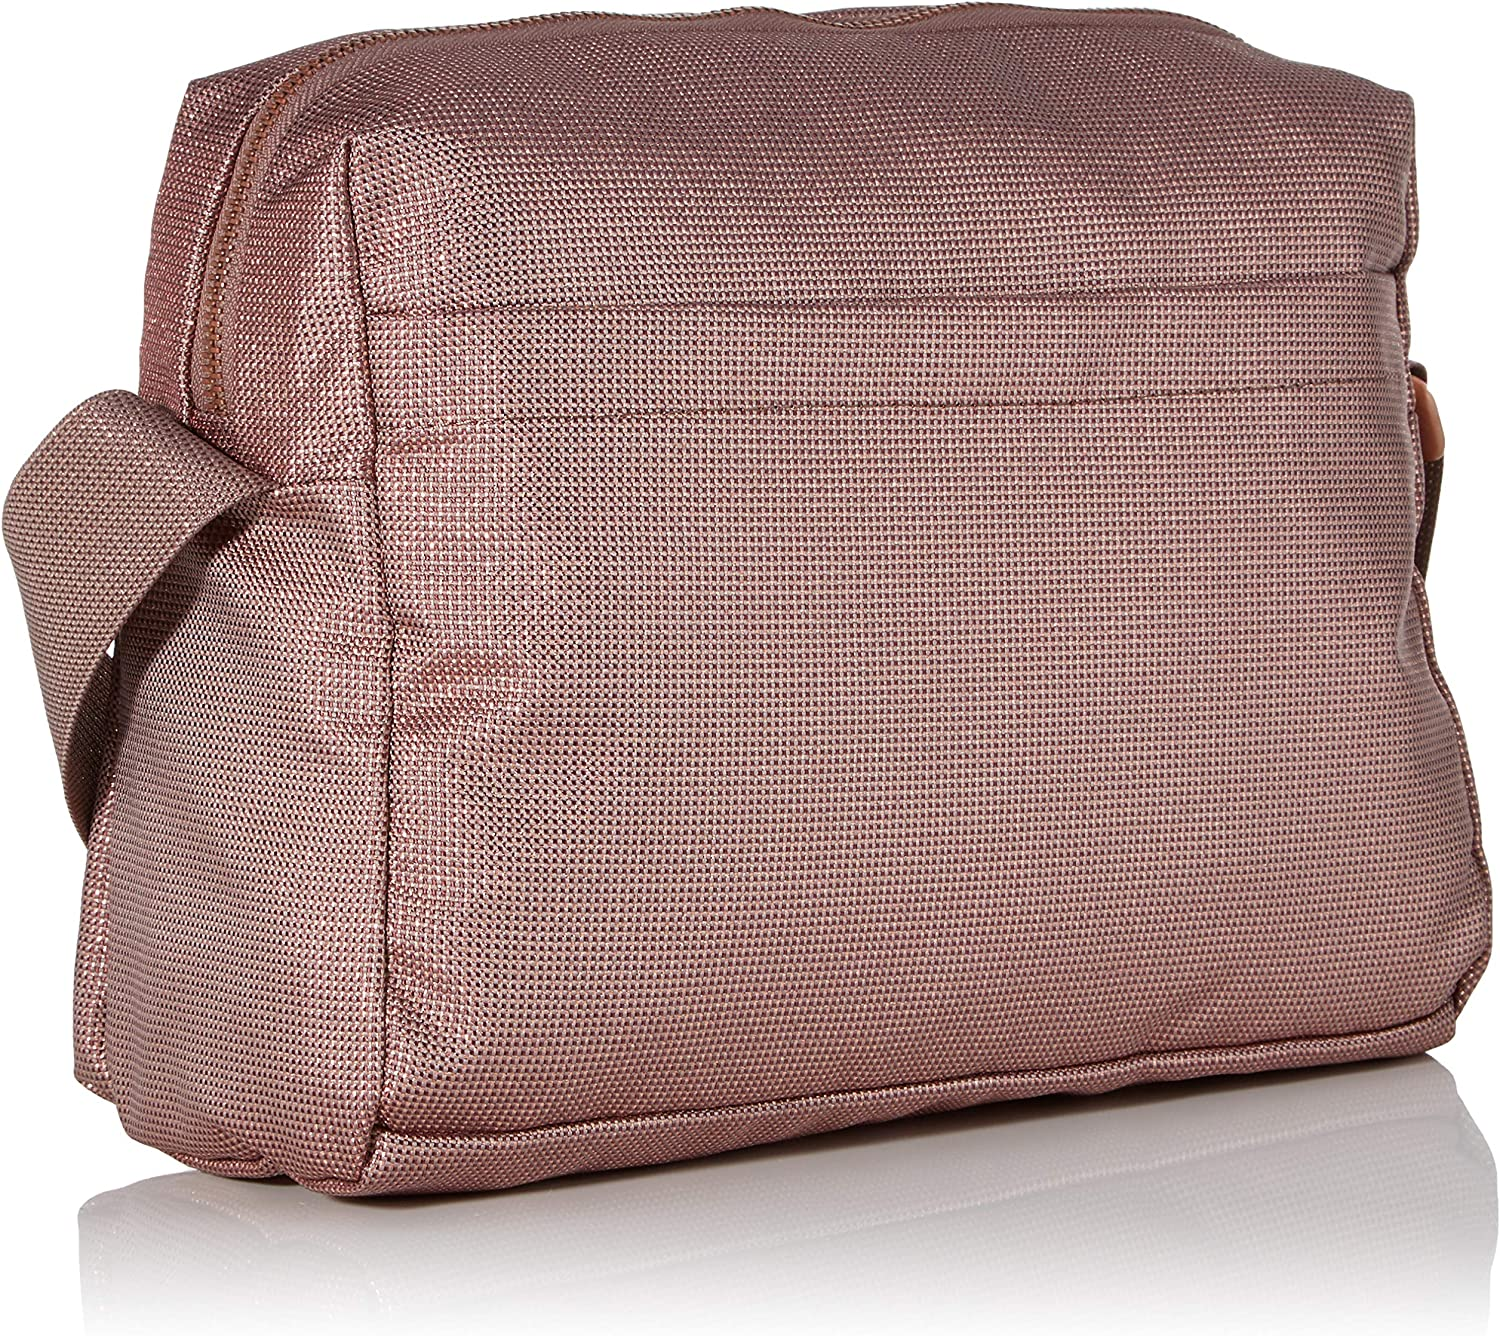 Mandarina Duck Md20 Lux Tracolla, Sac Messager Femme, Stampa, Taille unique Violet (Star Fire)